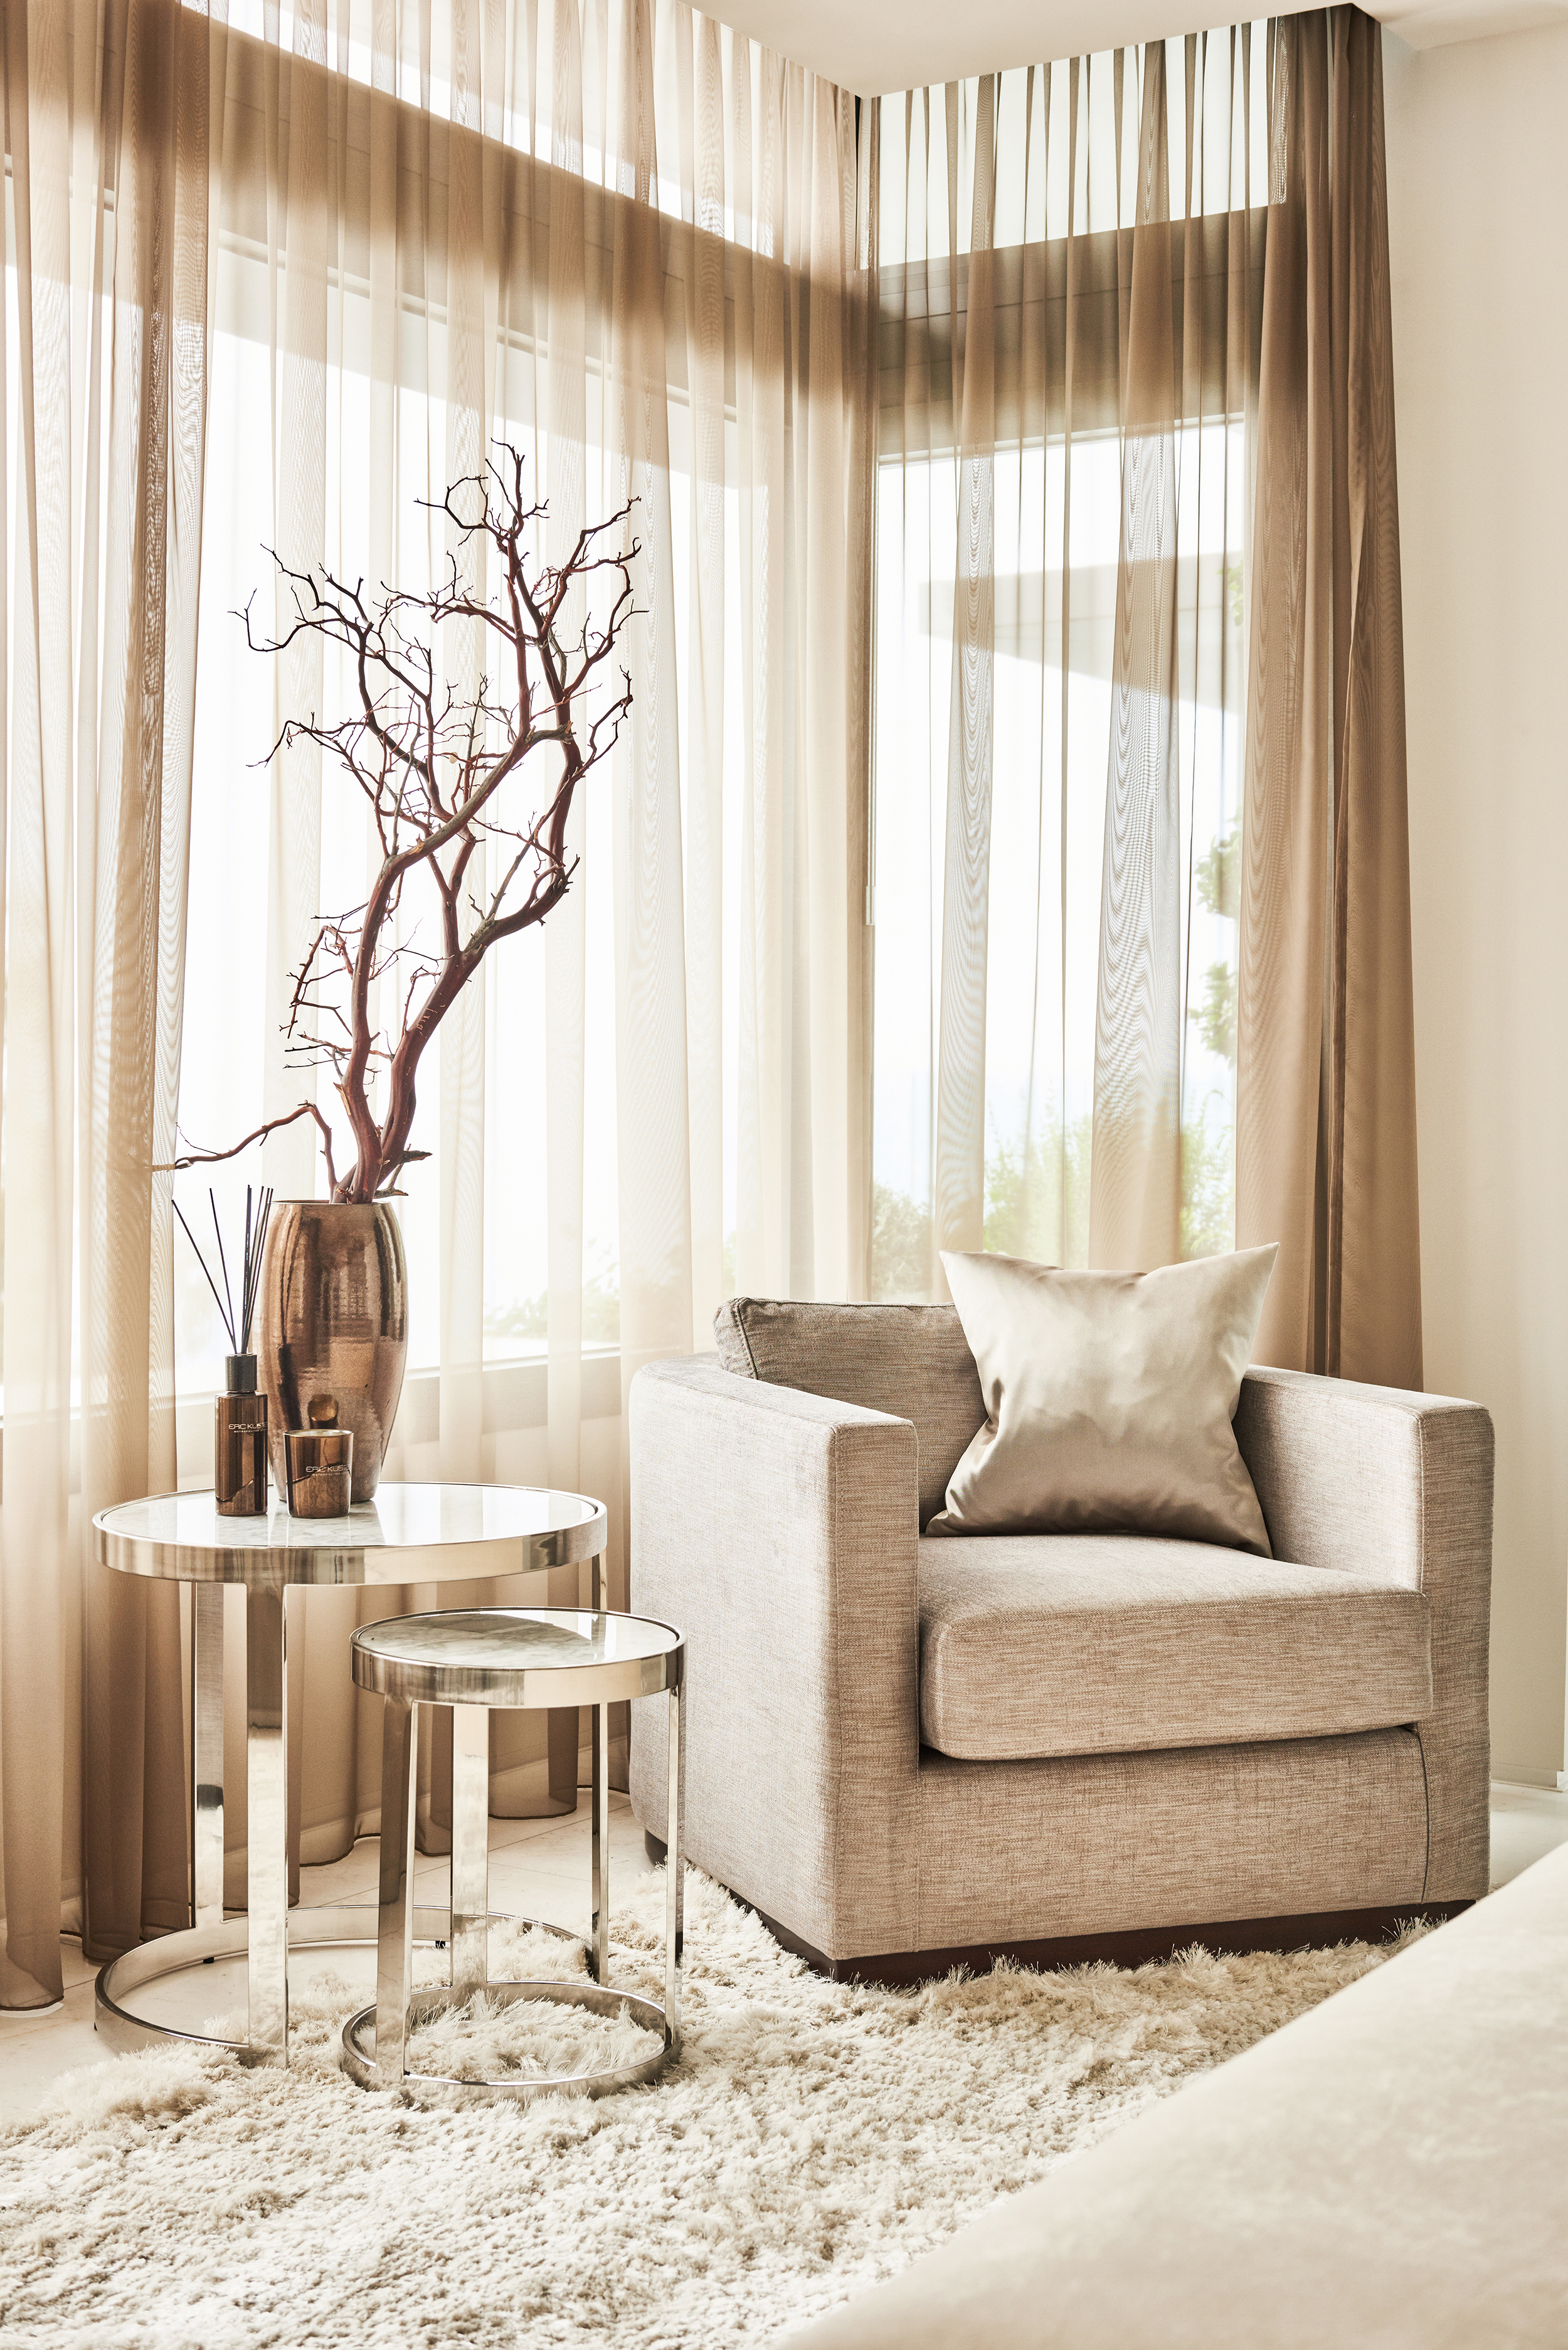 Interior by Eric Kuster | Courtesy of Haute Living